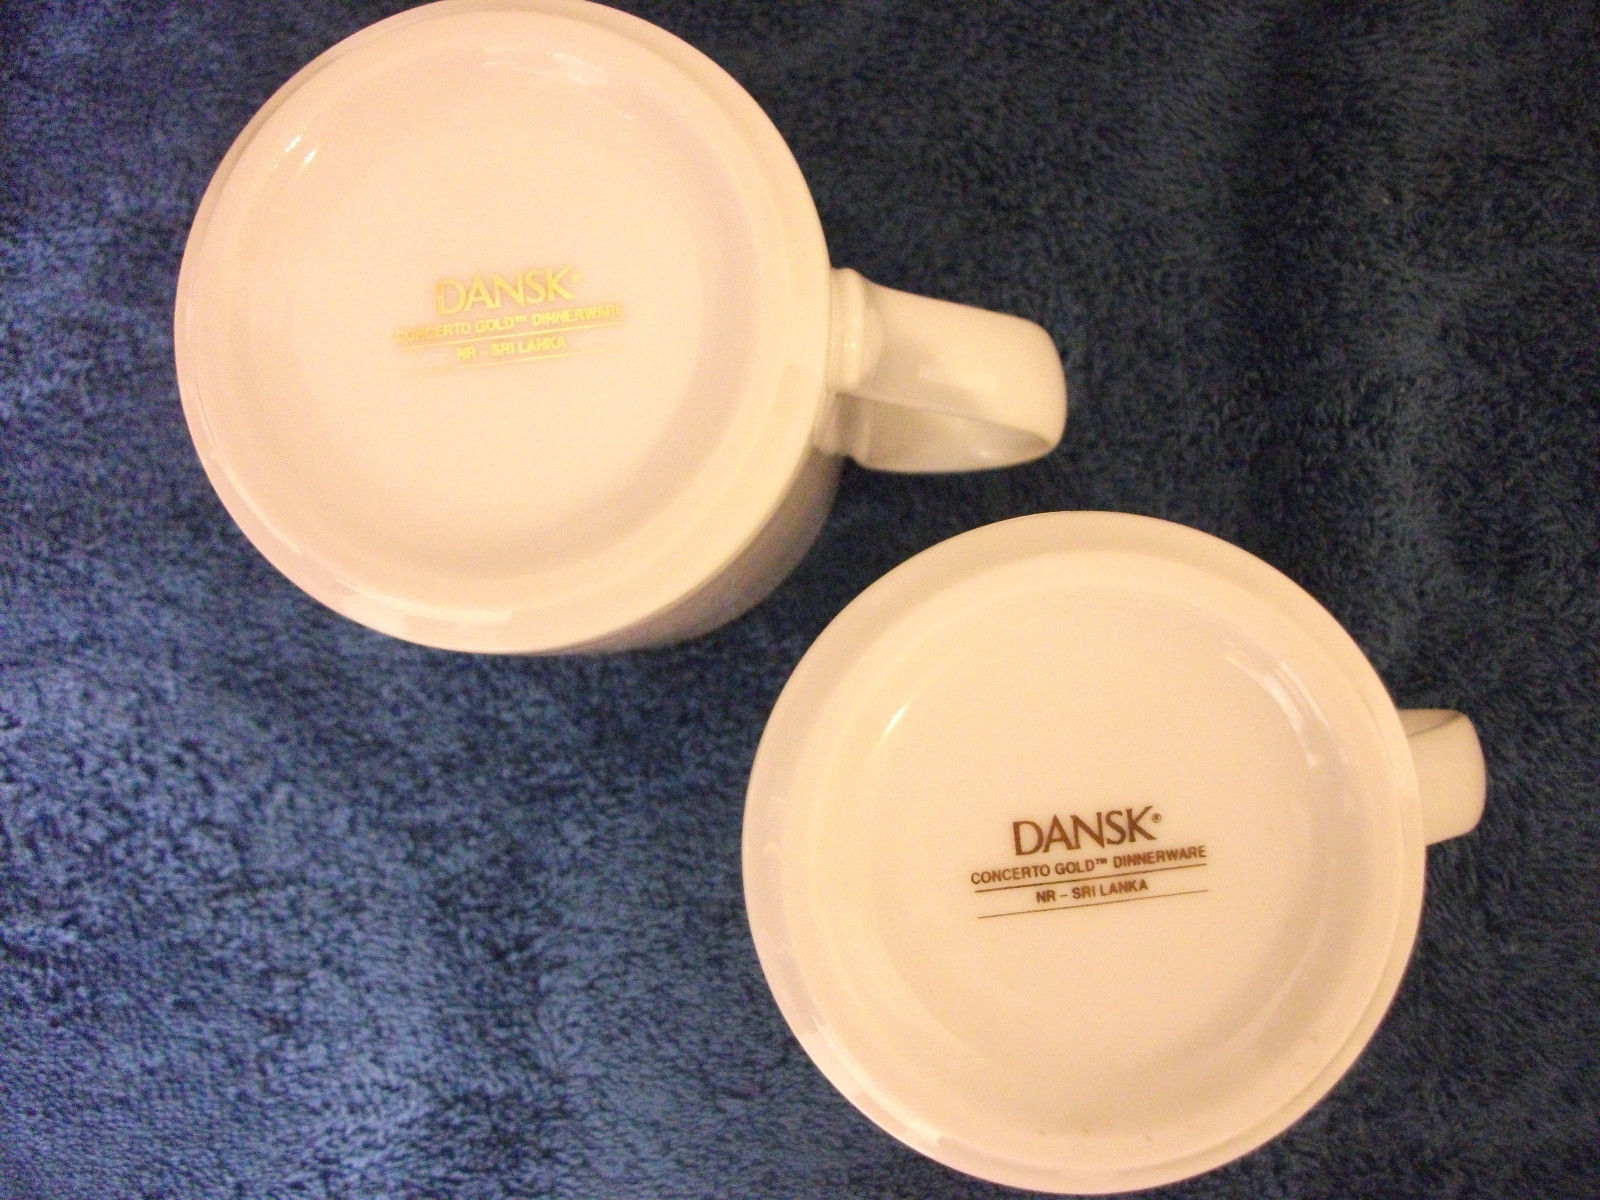 ... DANSK WHITE WITH GOLD TRIM CHINA MUGS CONCERTO GOLD BEAUTIFUL SET OF 2 ... & Dansk White With Gold Trim China Mugs and 50 similar items